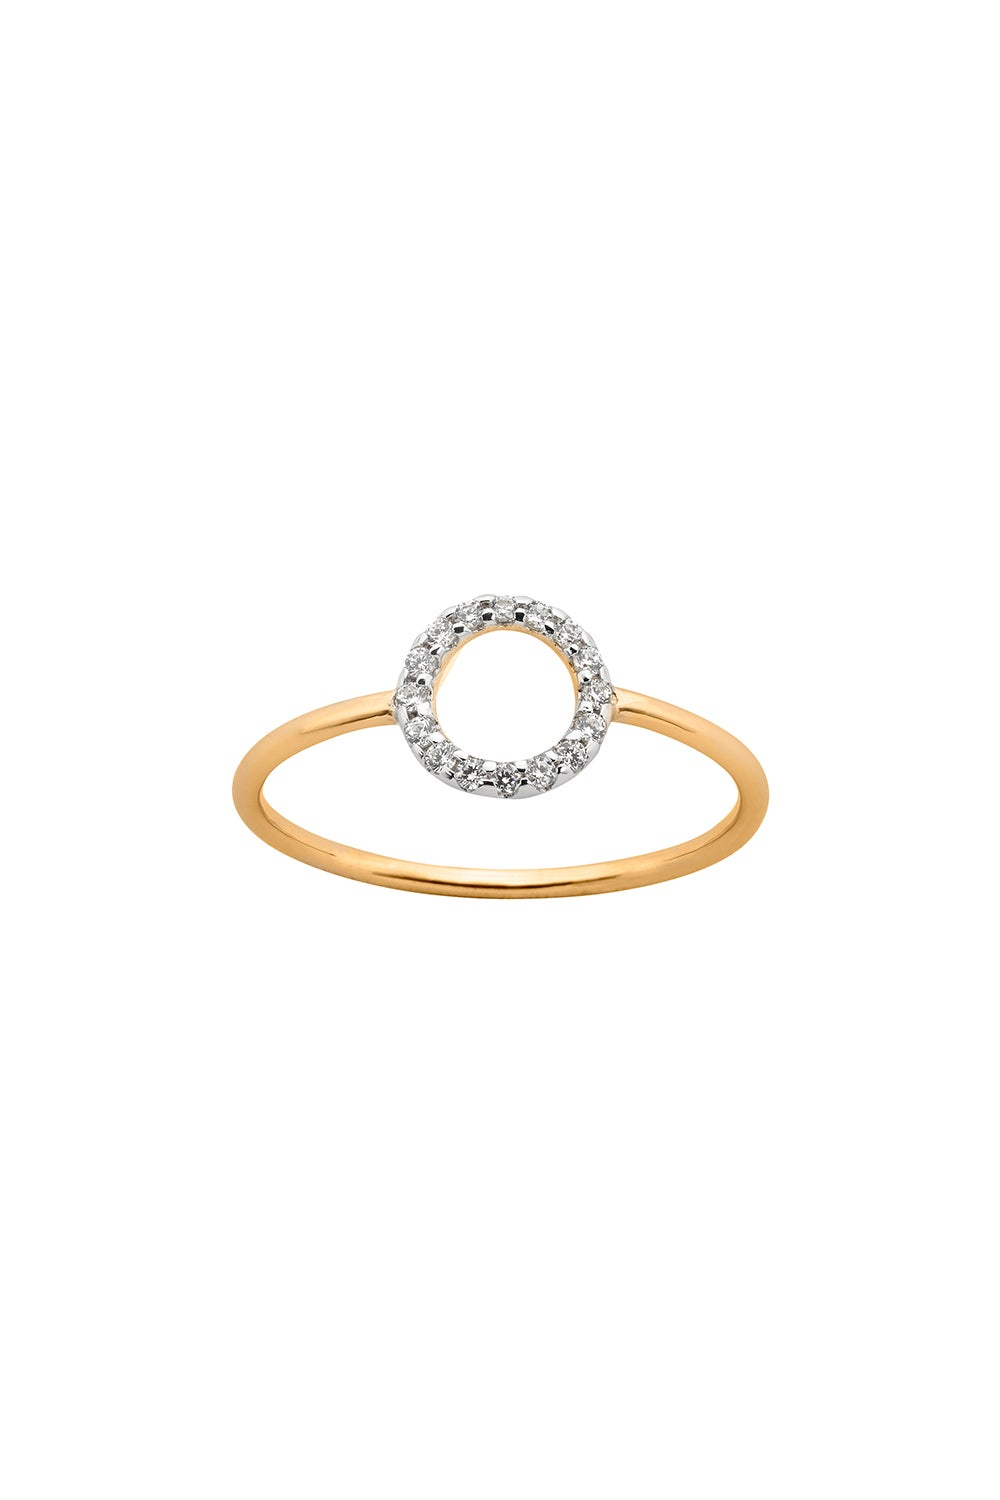 Orbit Diamond Ring, 9ct Gold, .11ct Diamond